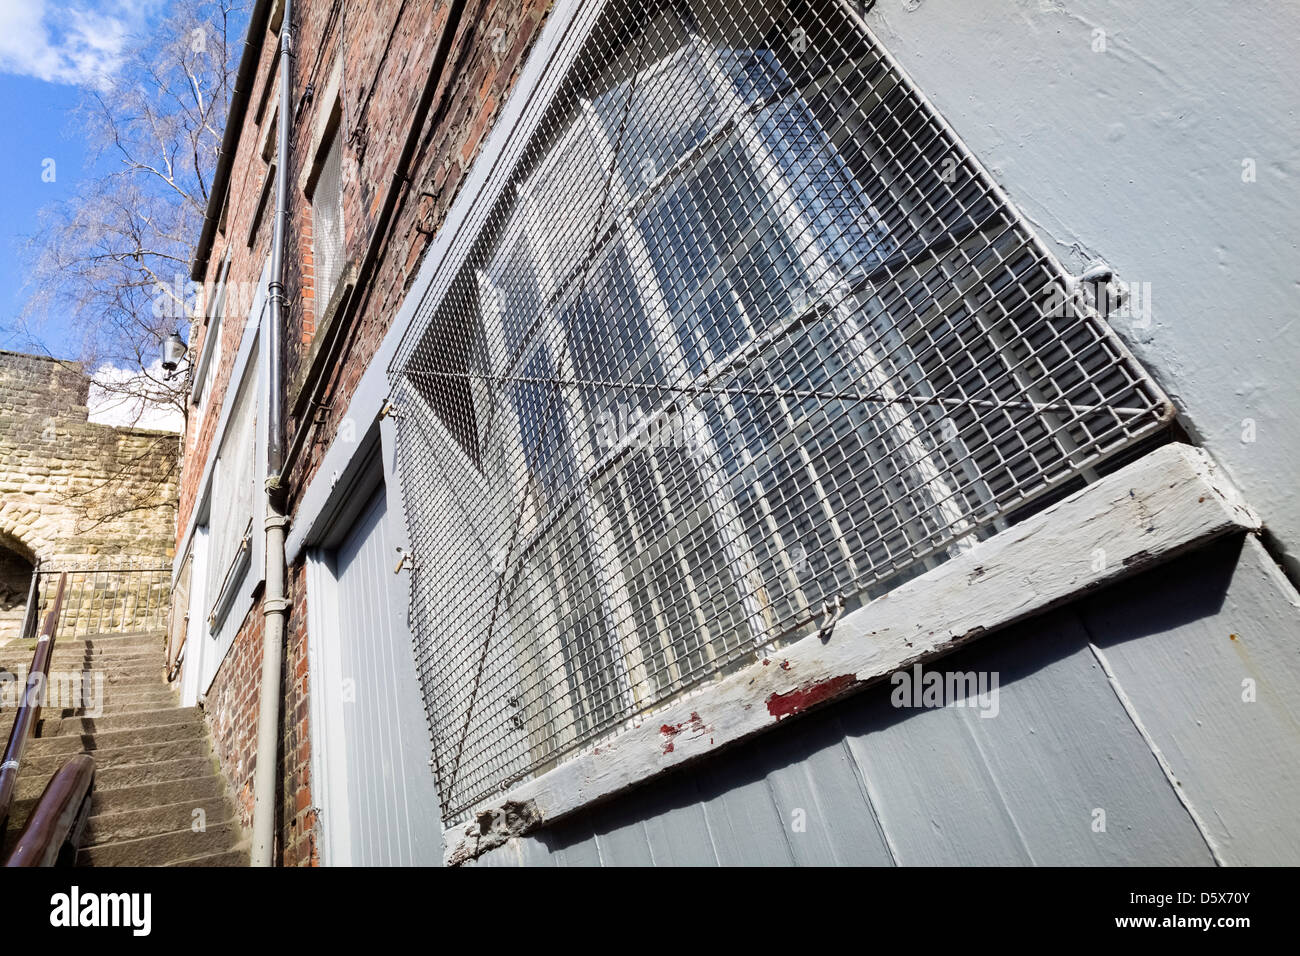 Old building with a wire mesh guard to protect the window Stock Photo